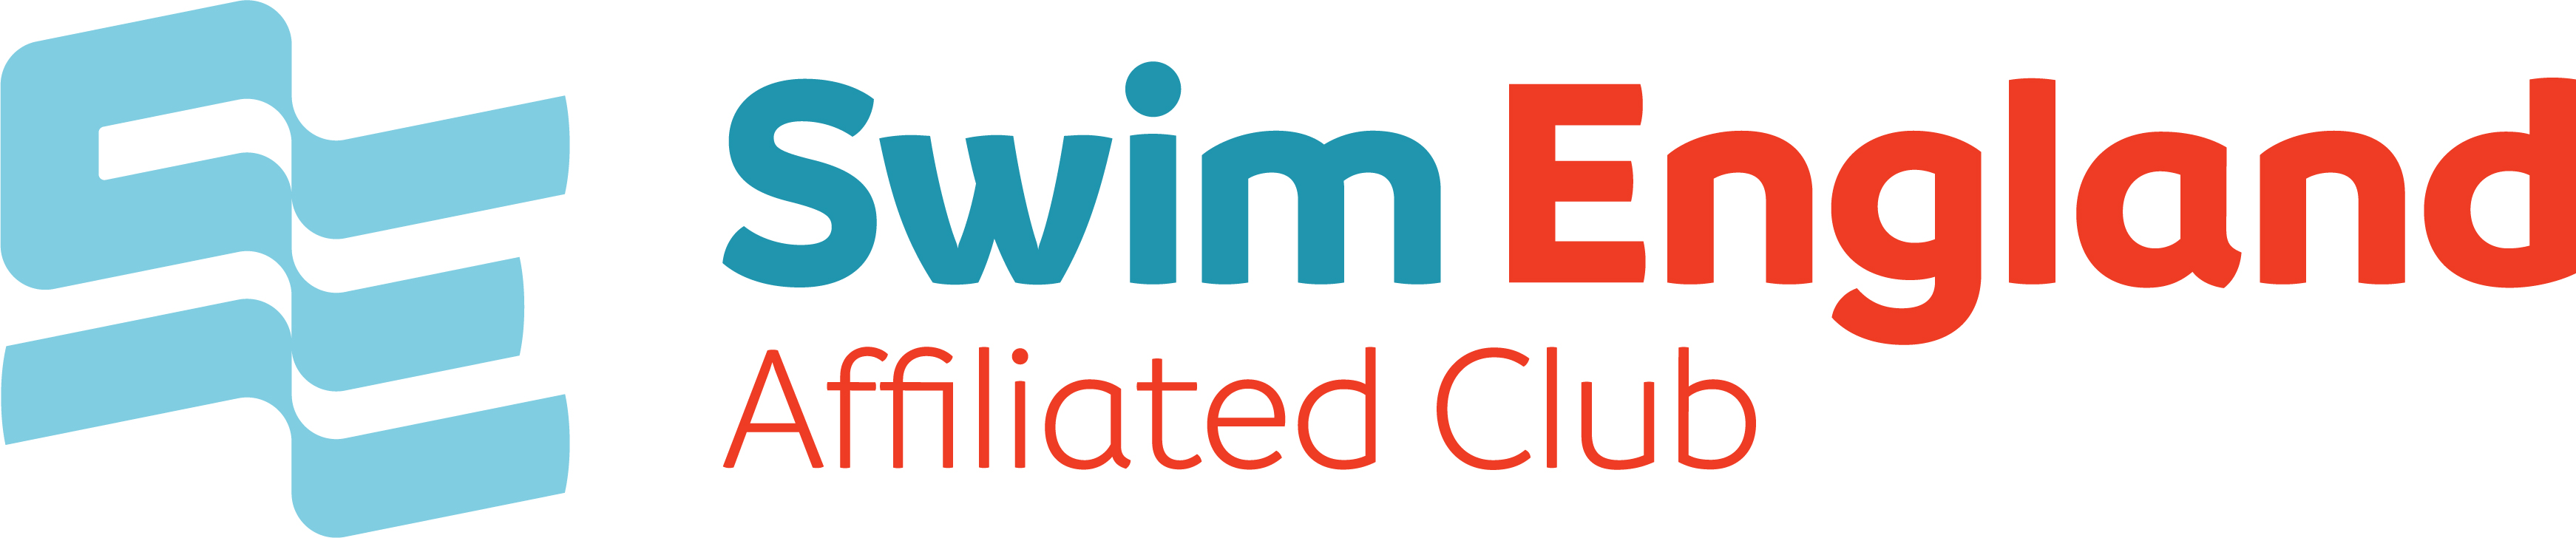 Swim England Affiliated Club